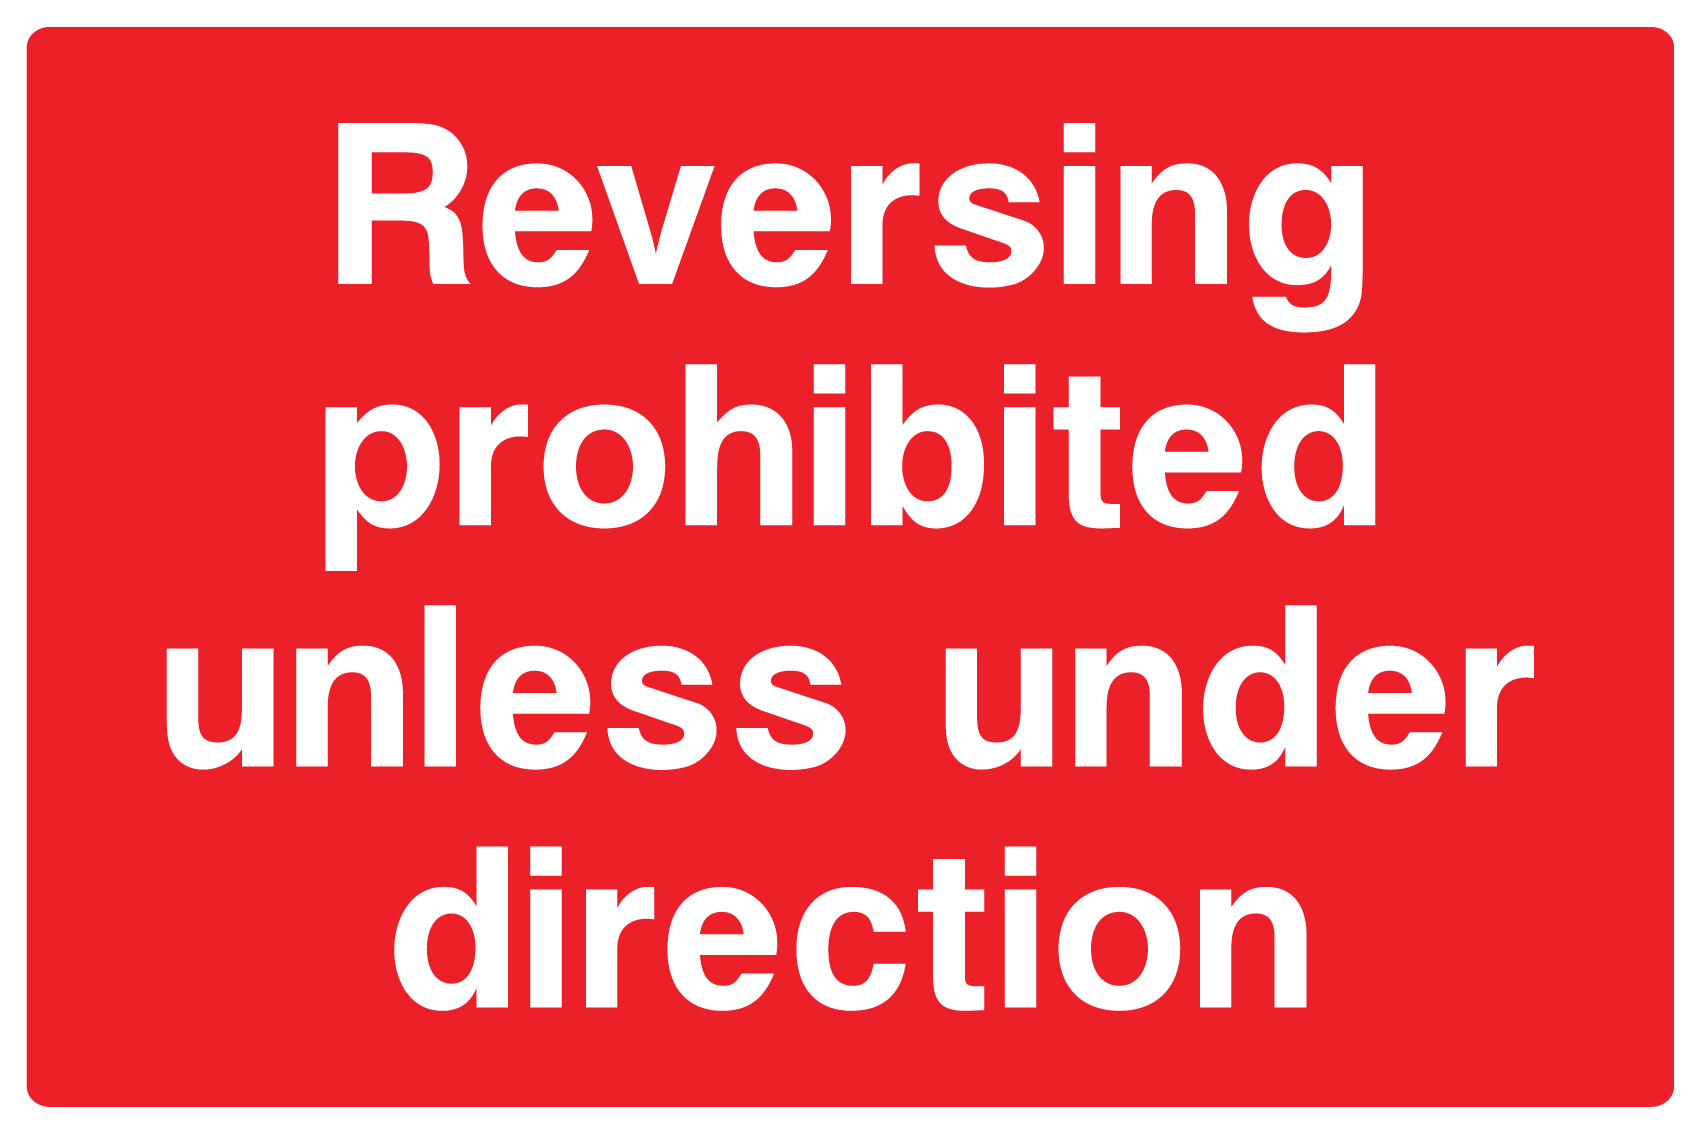 Reversing prohibited unless under direction sign